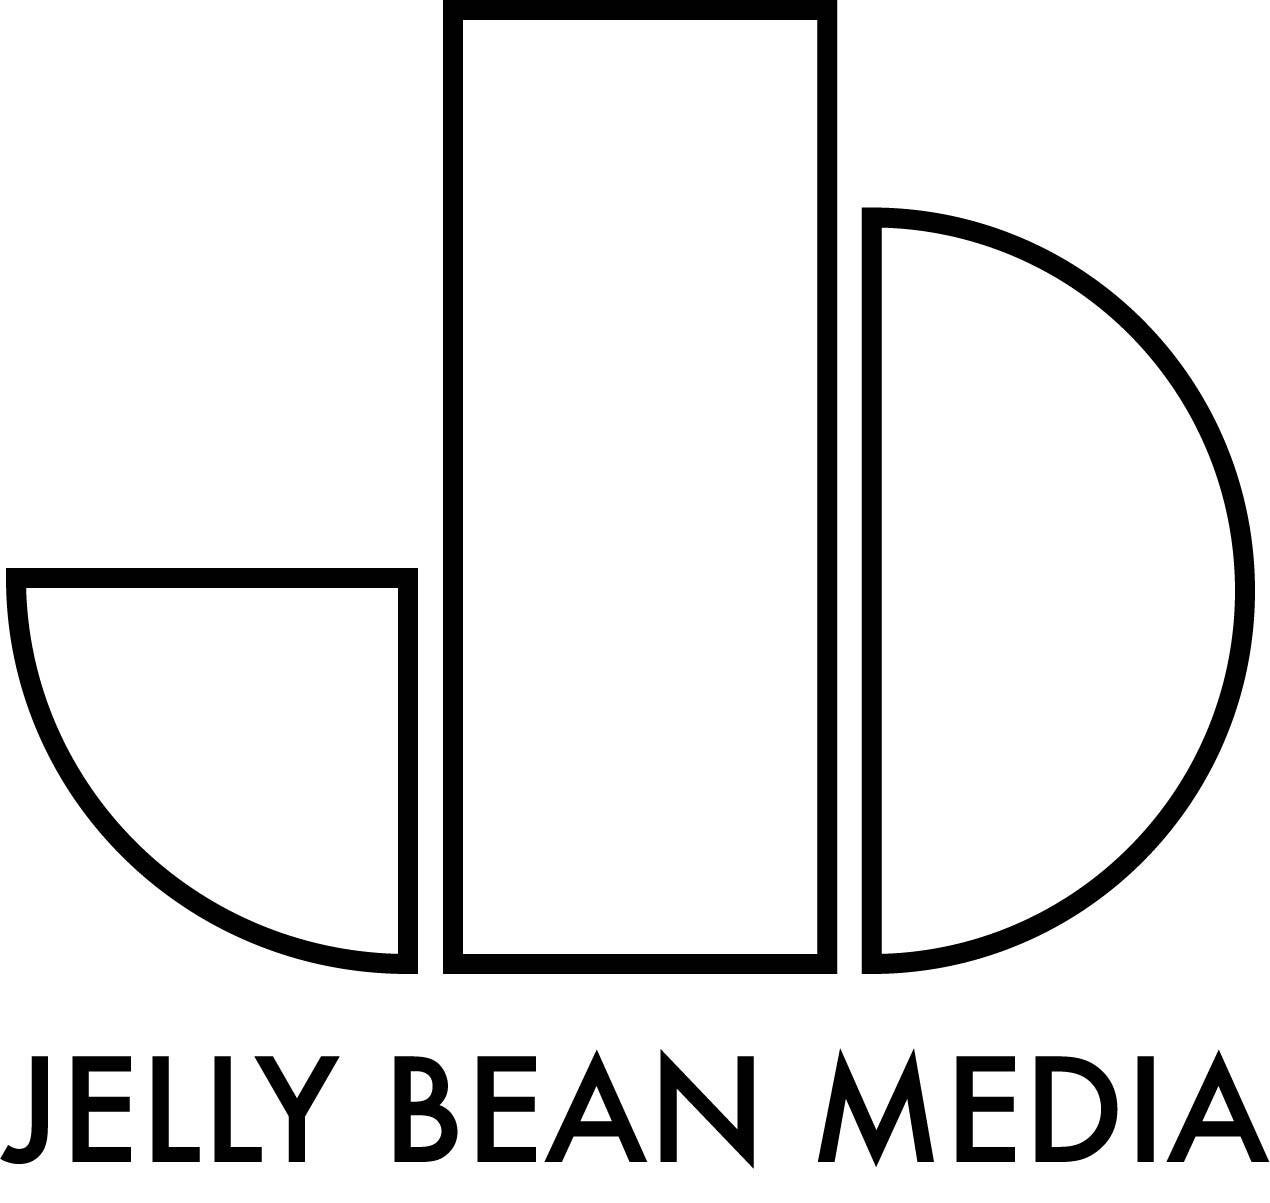 JELLY BEAN Media – Film ☆ TV ☆ Video